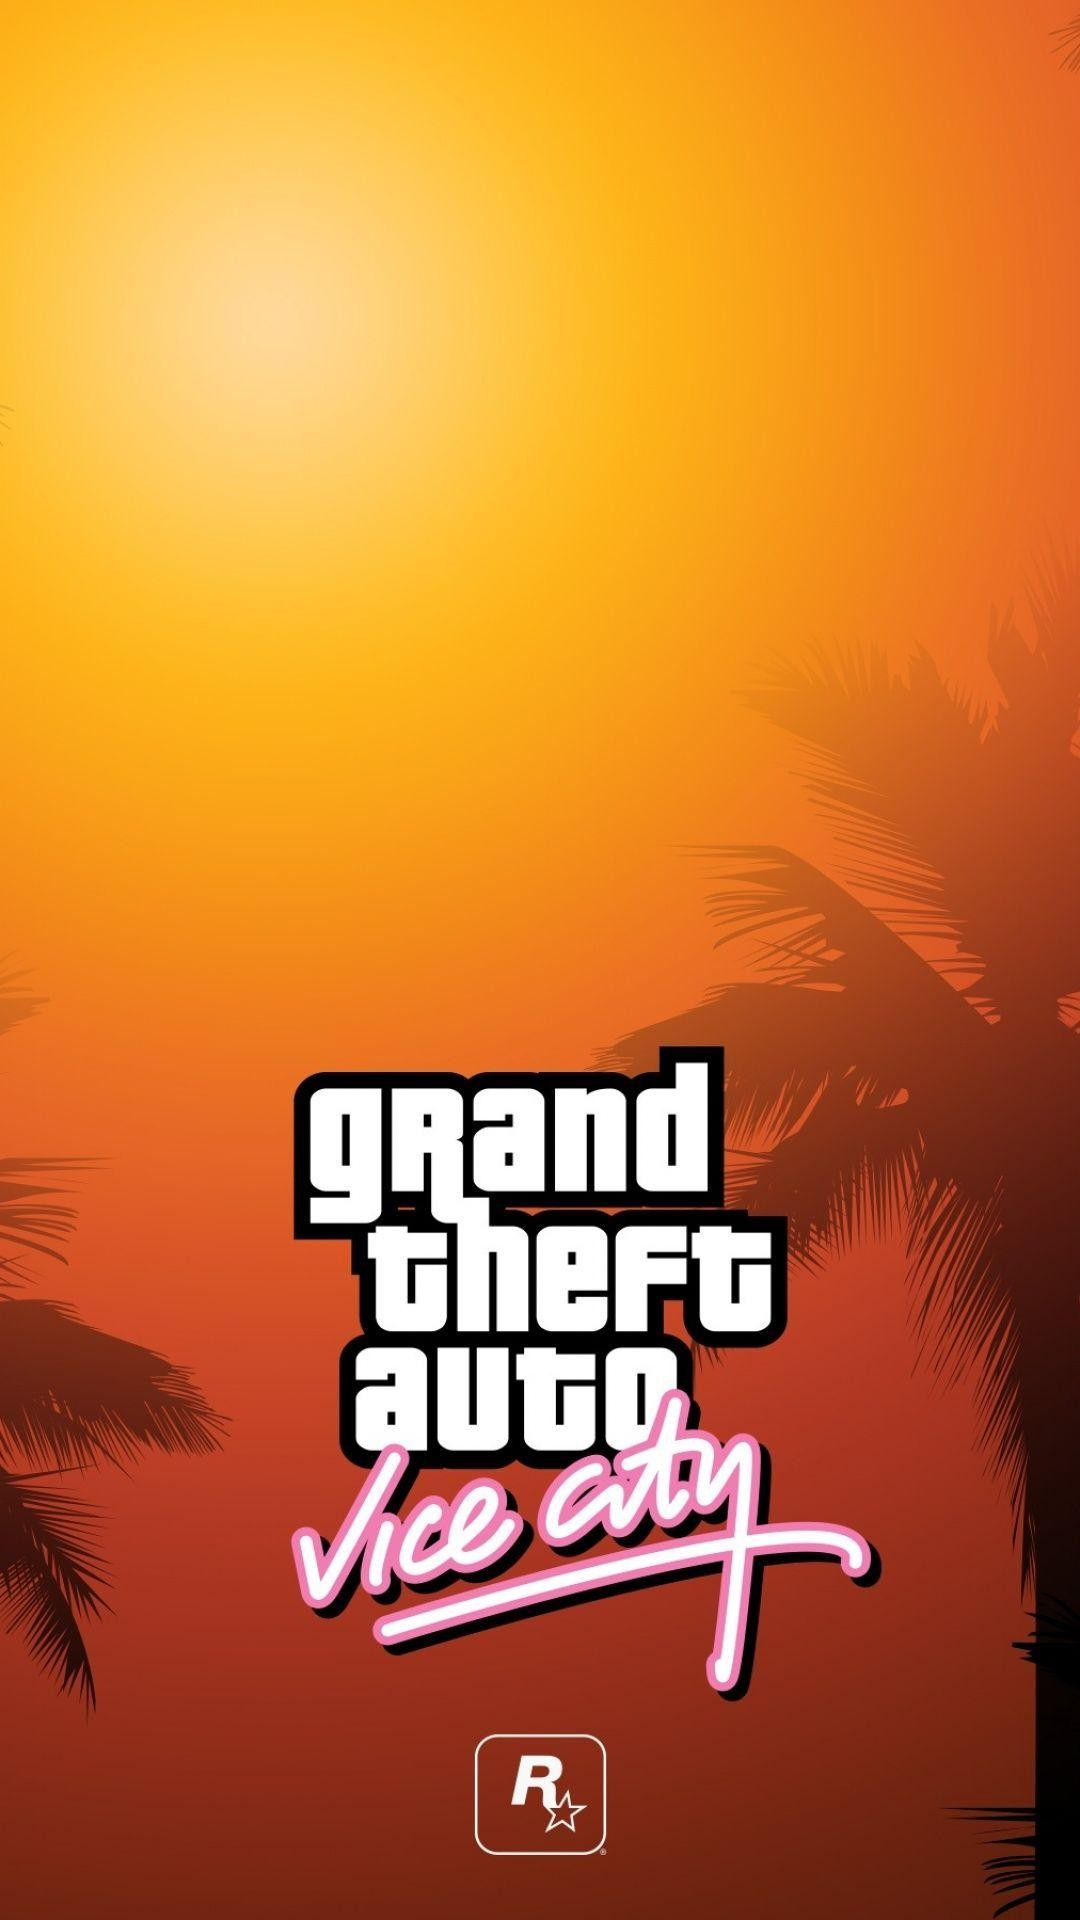 Gta vice city wallpapers 67 images 1920x1080 women luxury grand theft auto vice city sports car city heels wallpapers hd desktop and mobile backgrounds voltagebd Gallery